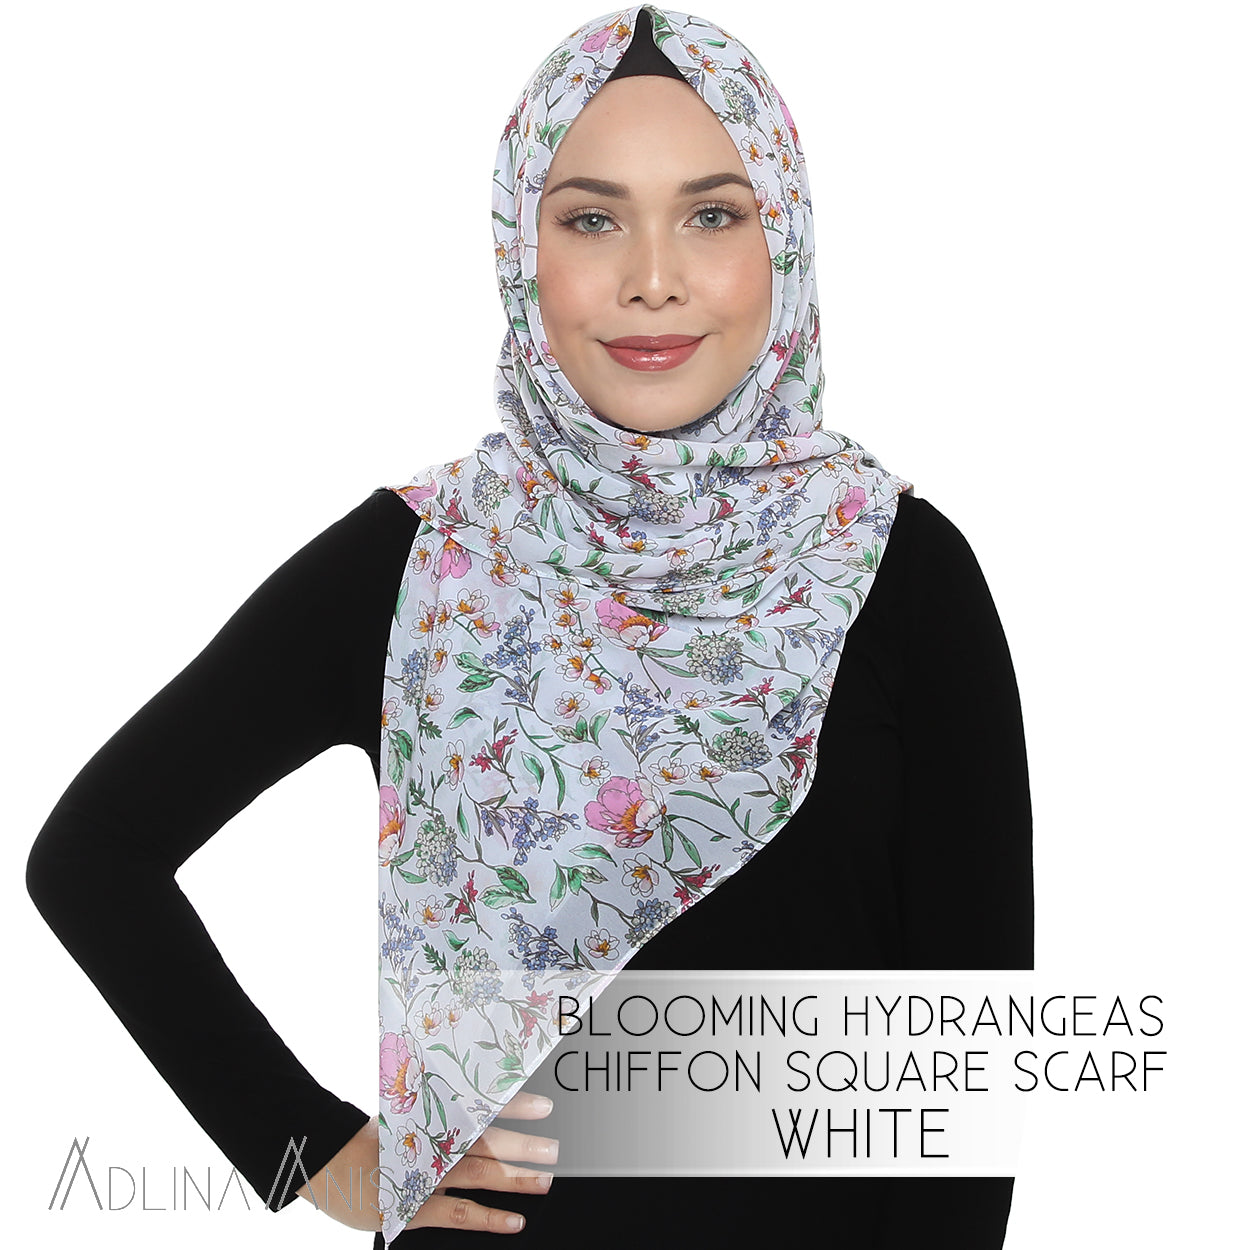 Blooming Hydrangeas Chiffon Square Scarf - White